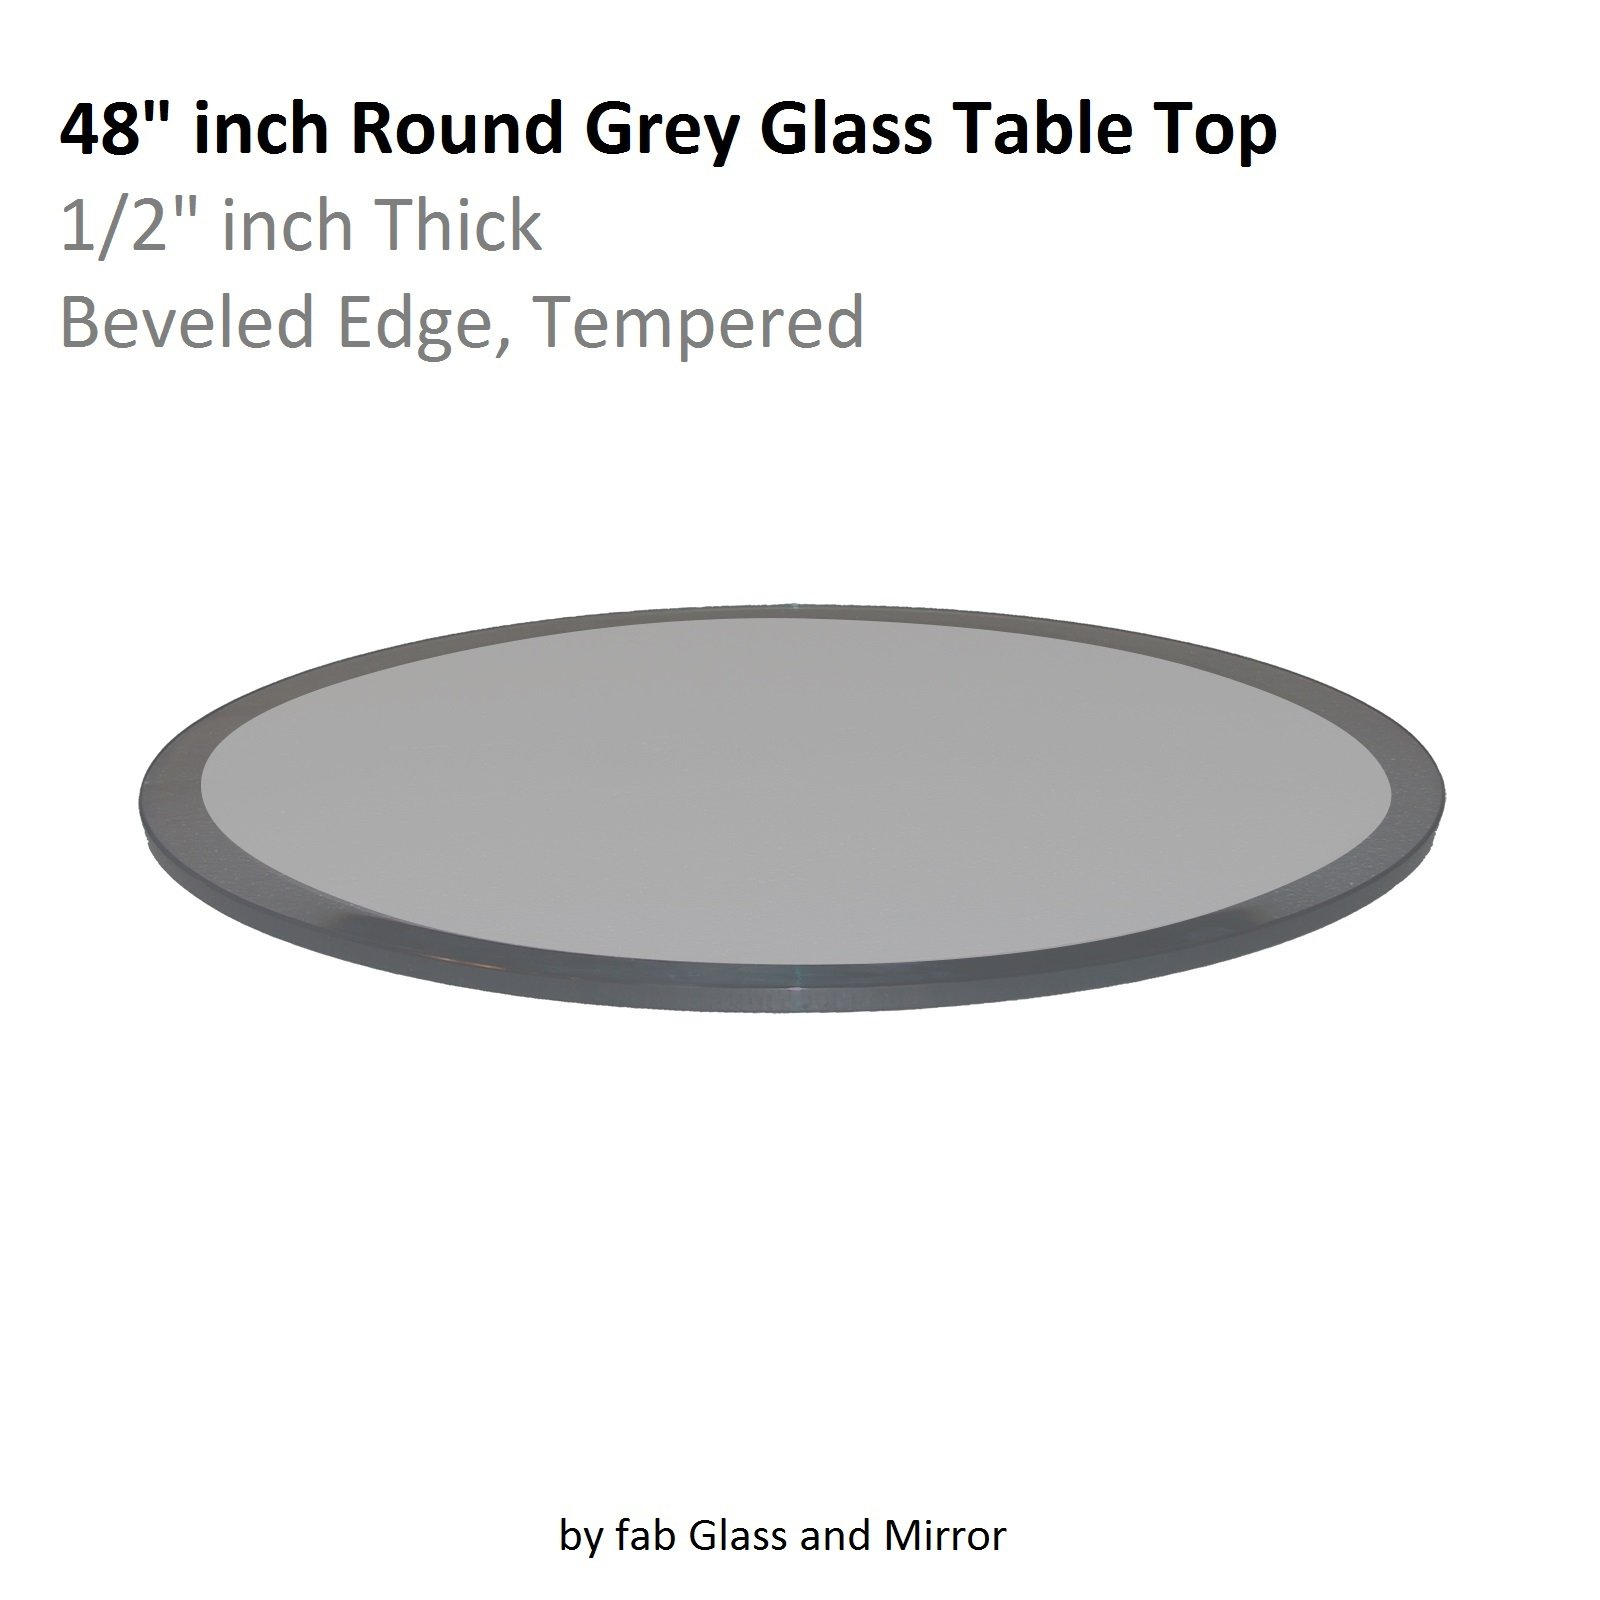 Fab Glass and Mirror Glass Table Top 42'' Round 1/2'' Thick Beveled Tempered, Grey by Fab Glass and Mirror